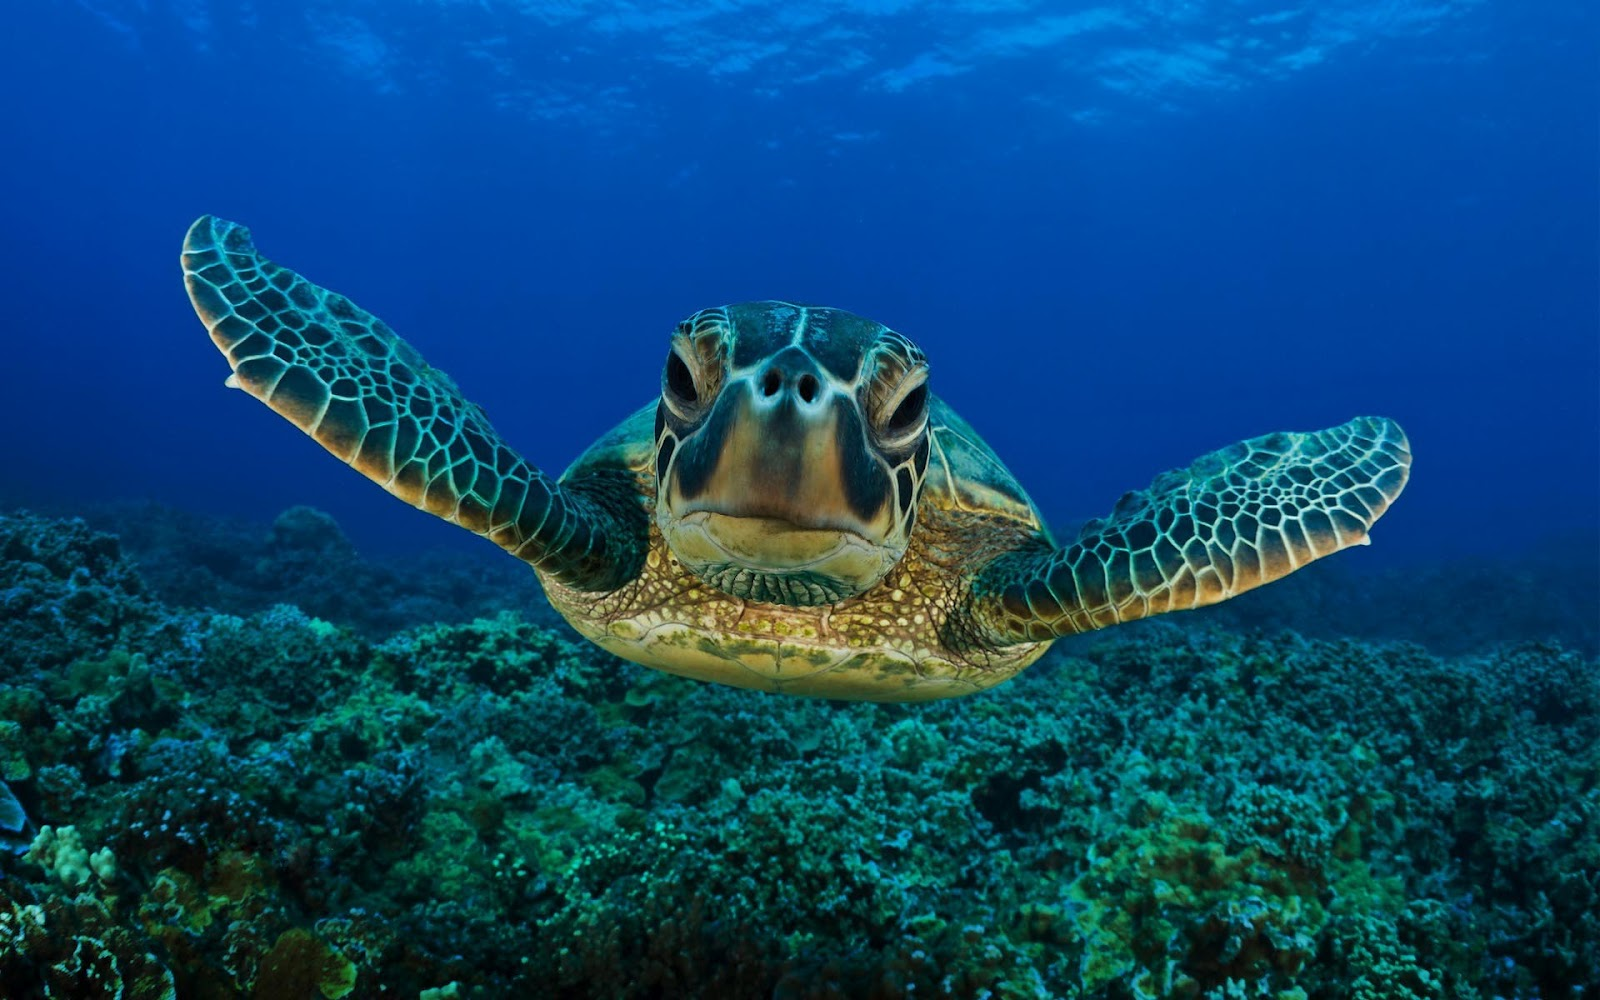 swimming turtle underwater picture hd animals wallpapers